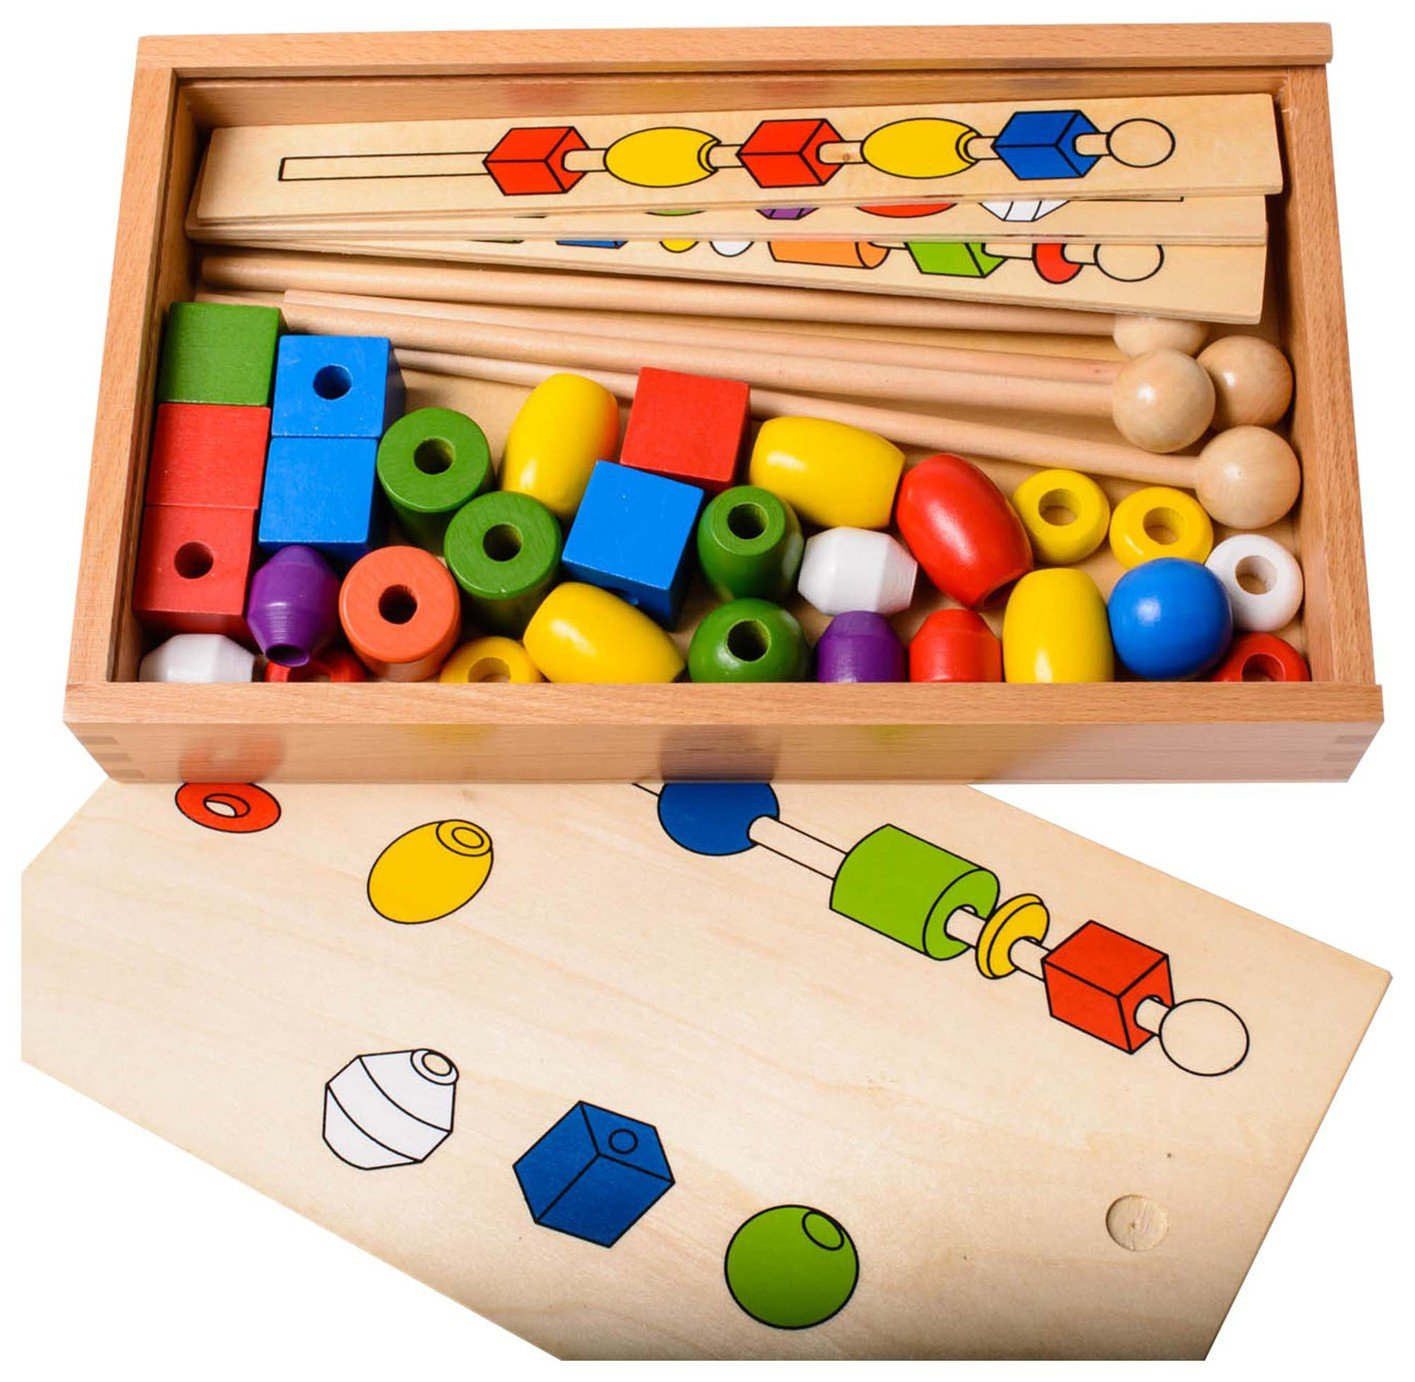 Image of EDUK8 Wooden Toy Sequencing Beads